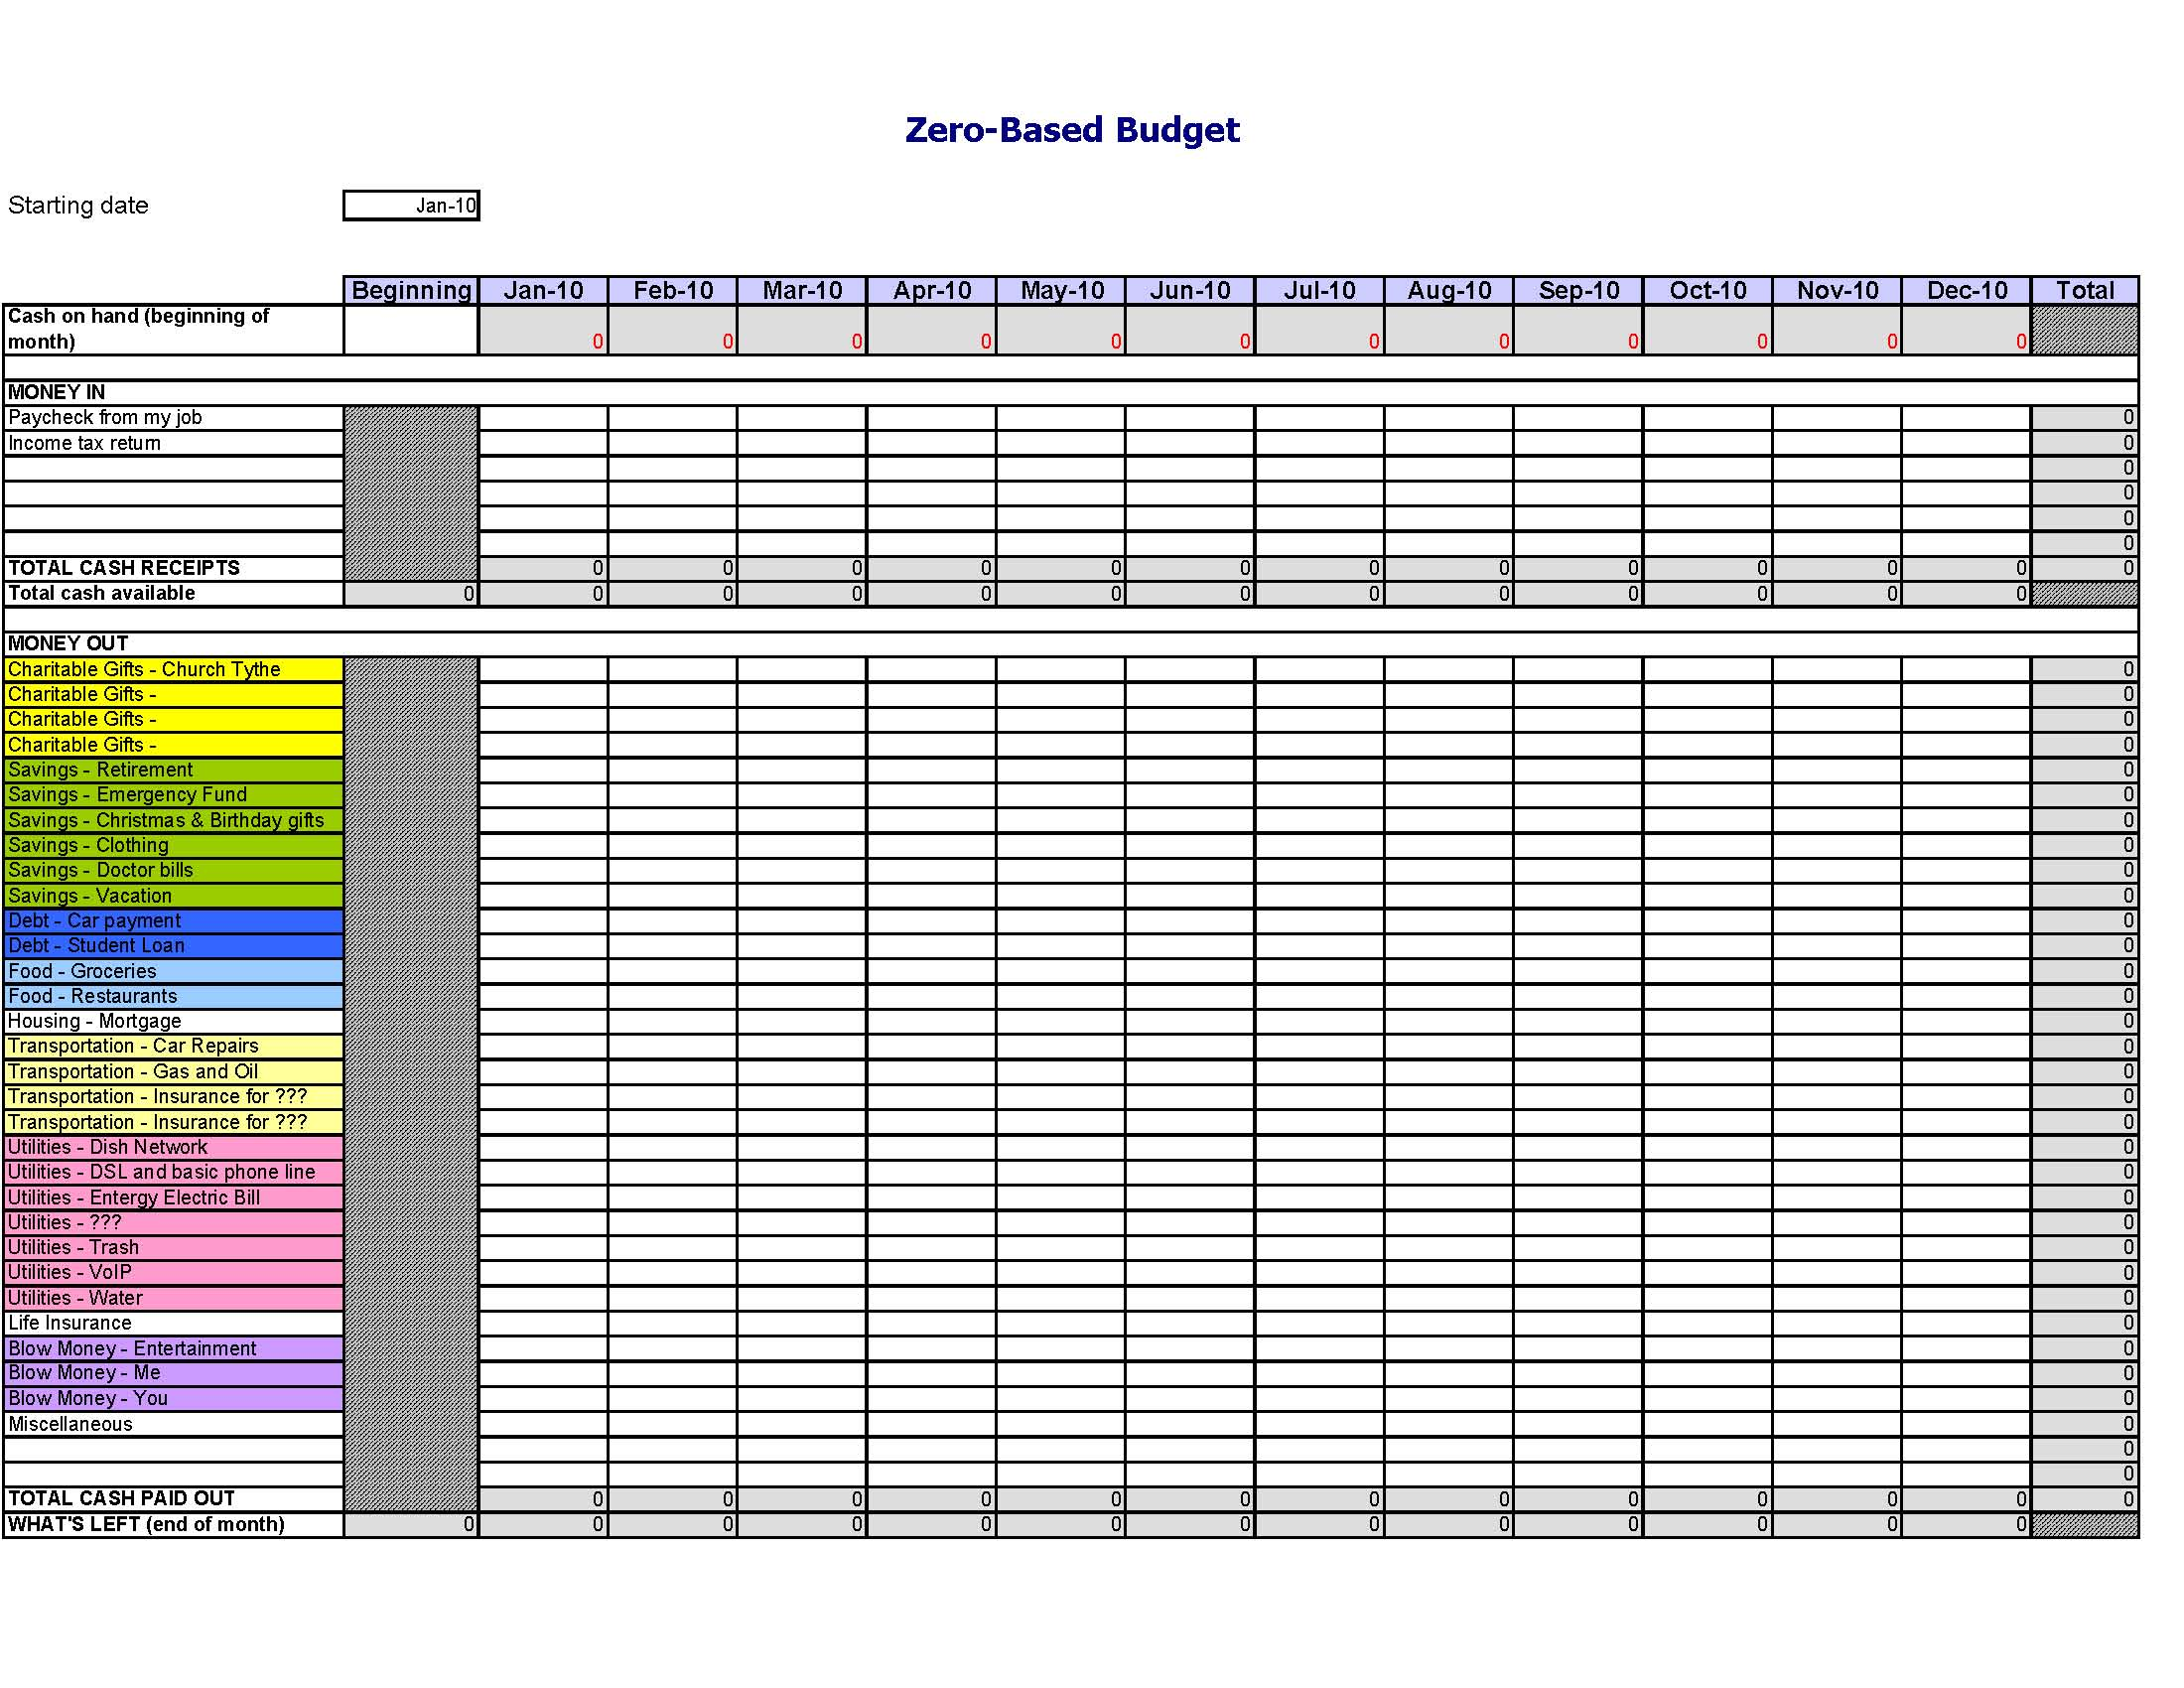 Best Personal Finance Spreadsheet Running Budget Template Credit Card Spreadsheet Template Personal Investment Plan Template Credit Card Log Spreadsheet Free Spreadsheet For Windows 10 Finance Spreadsheet Template Free